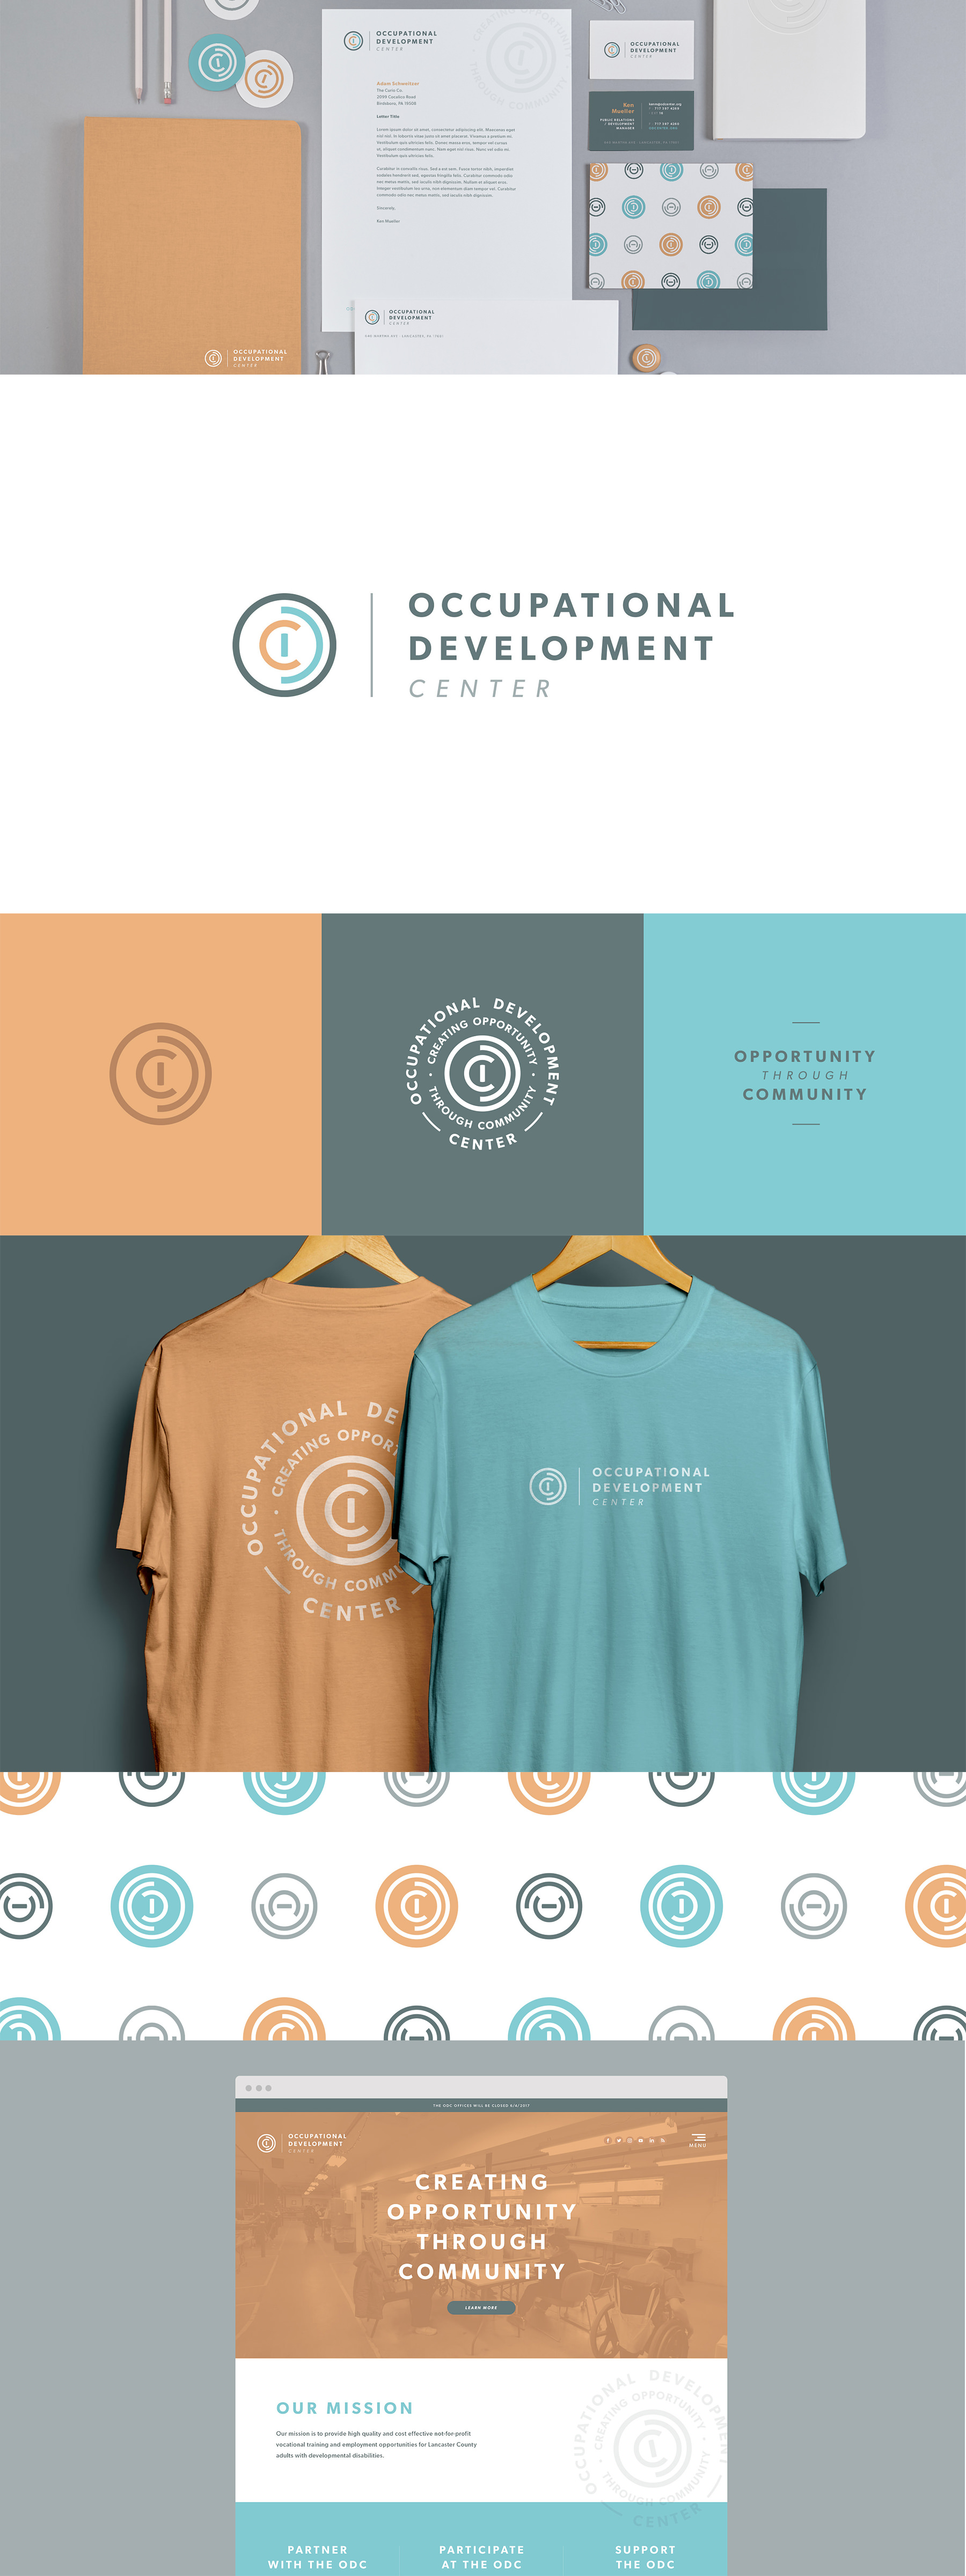 Occupational Development Center branding by The Curio Collective